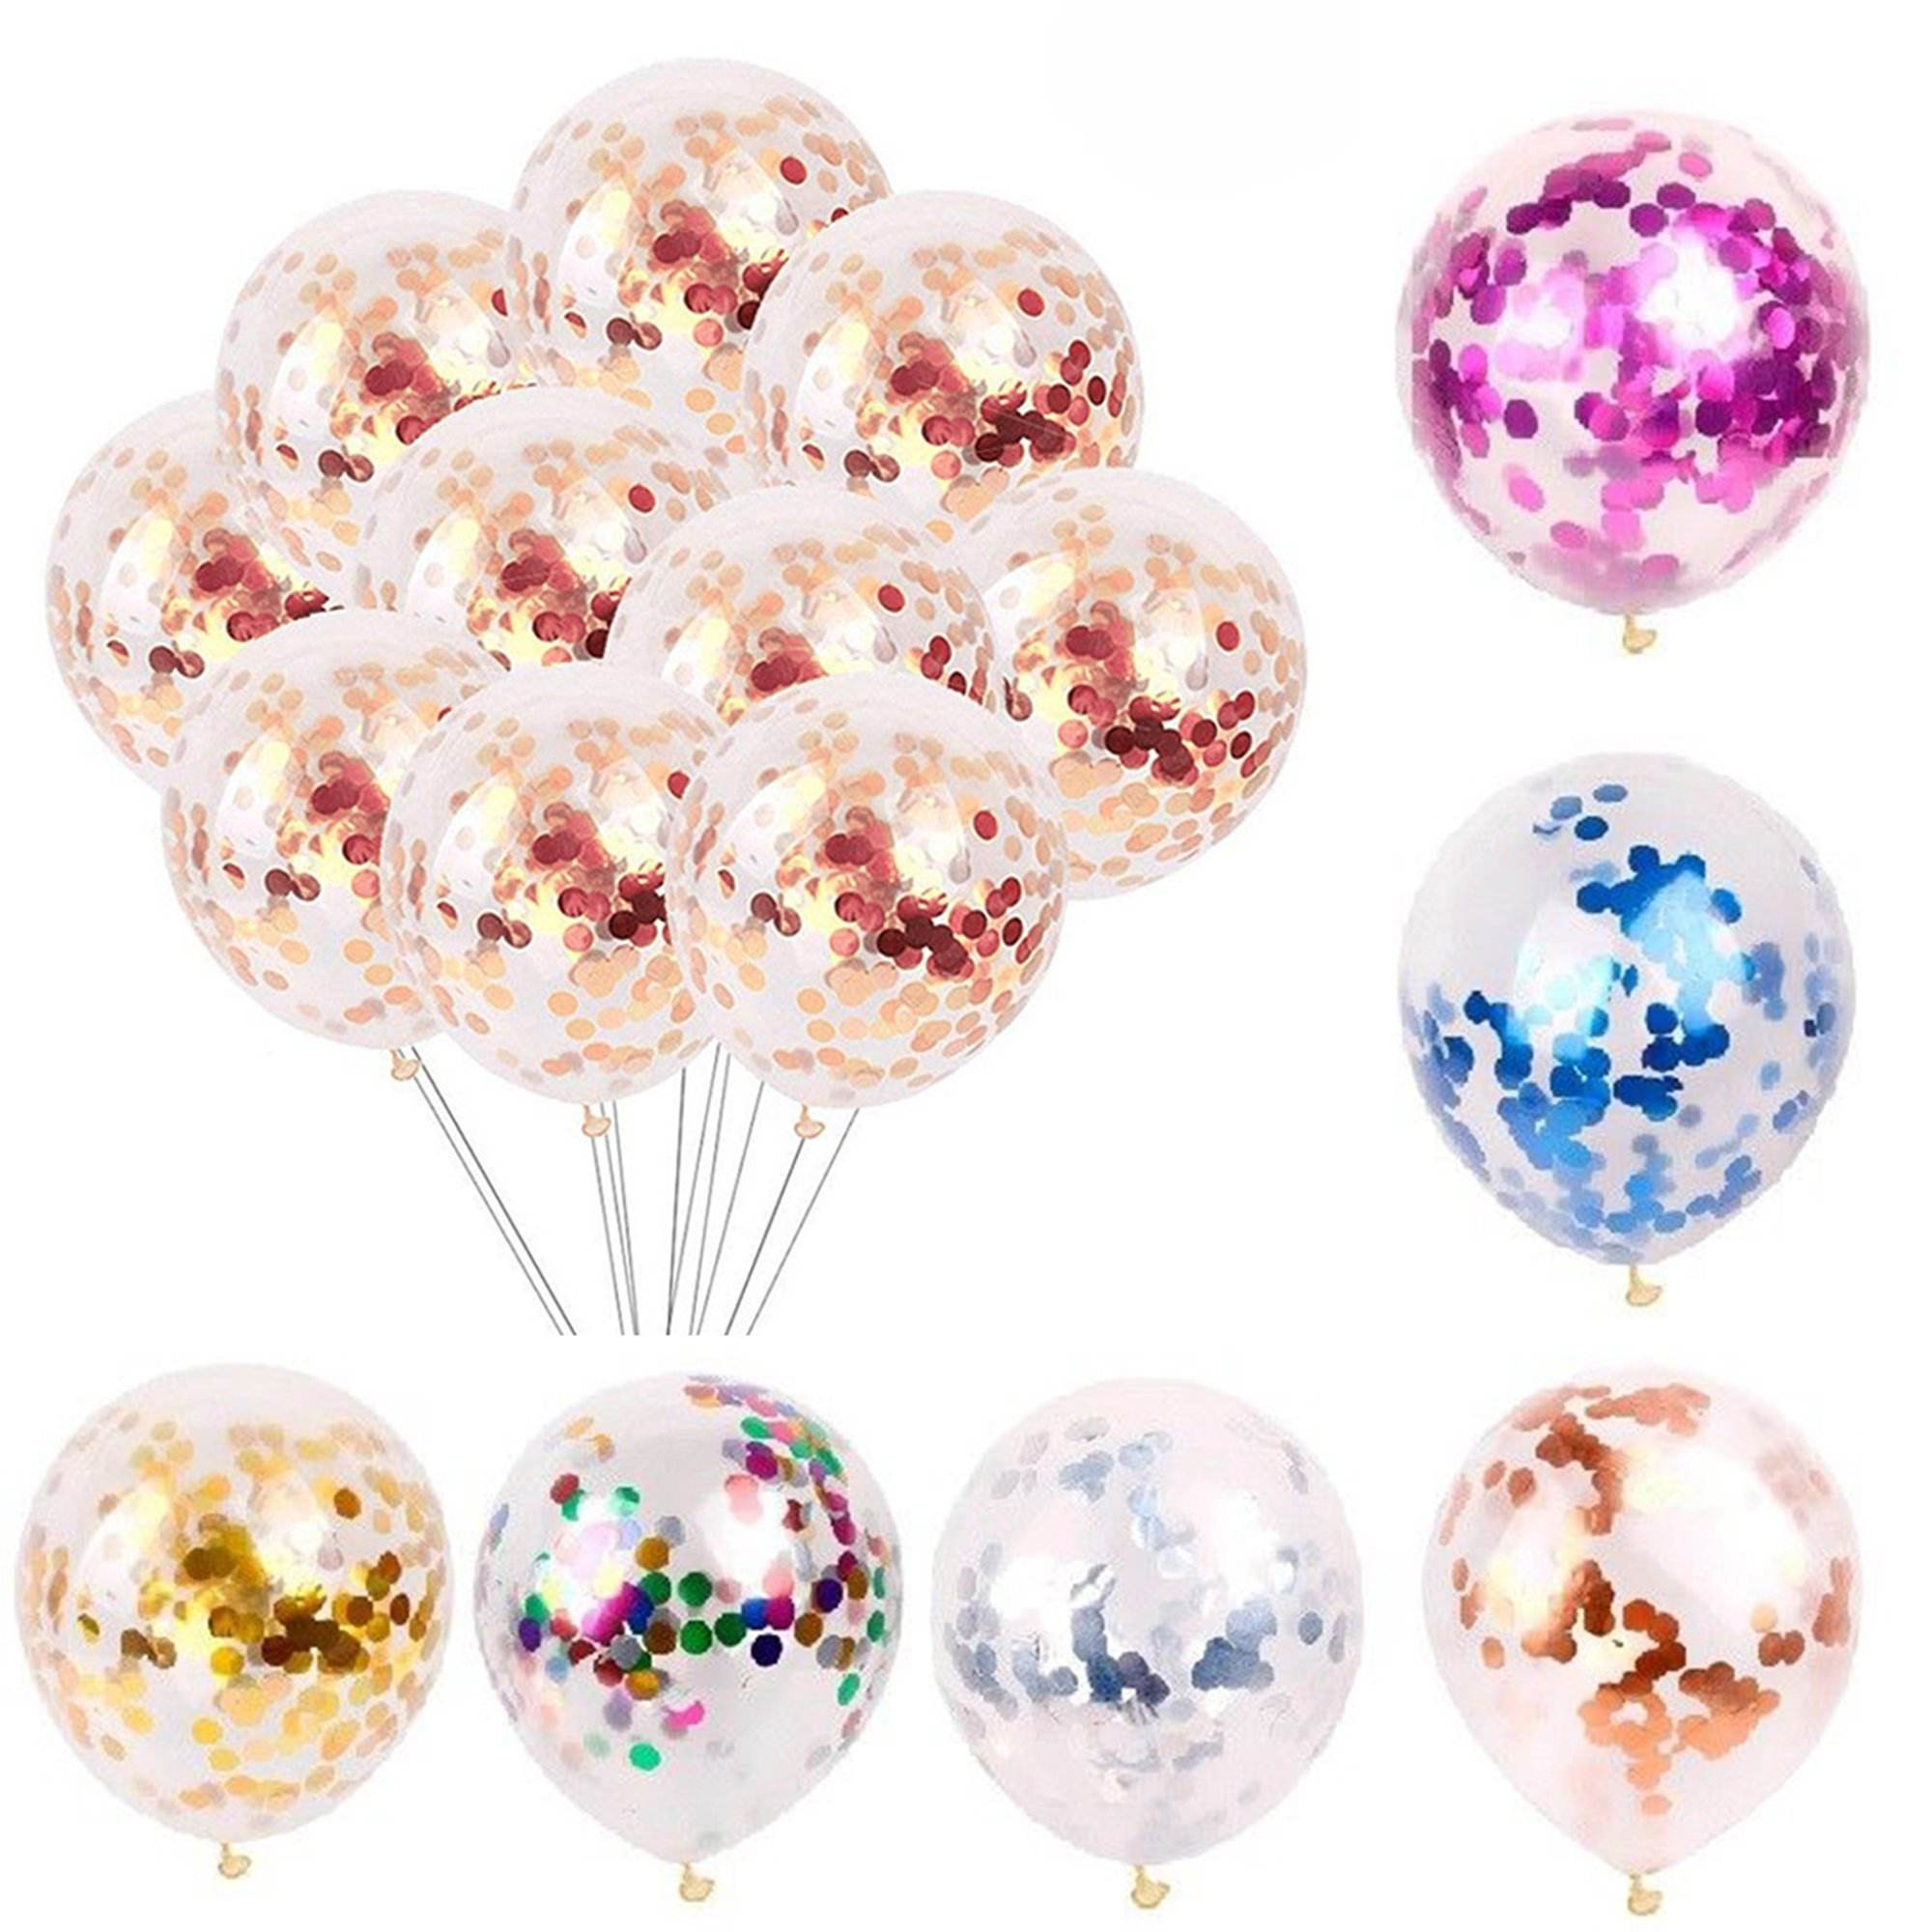 Groothandel 12in Rose Gold Feestartikelen Decoratie Giant Transparant Latex Vulling Confetti Ballon Ballon